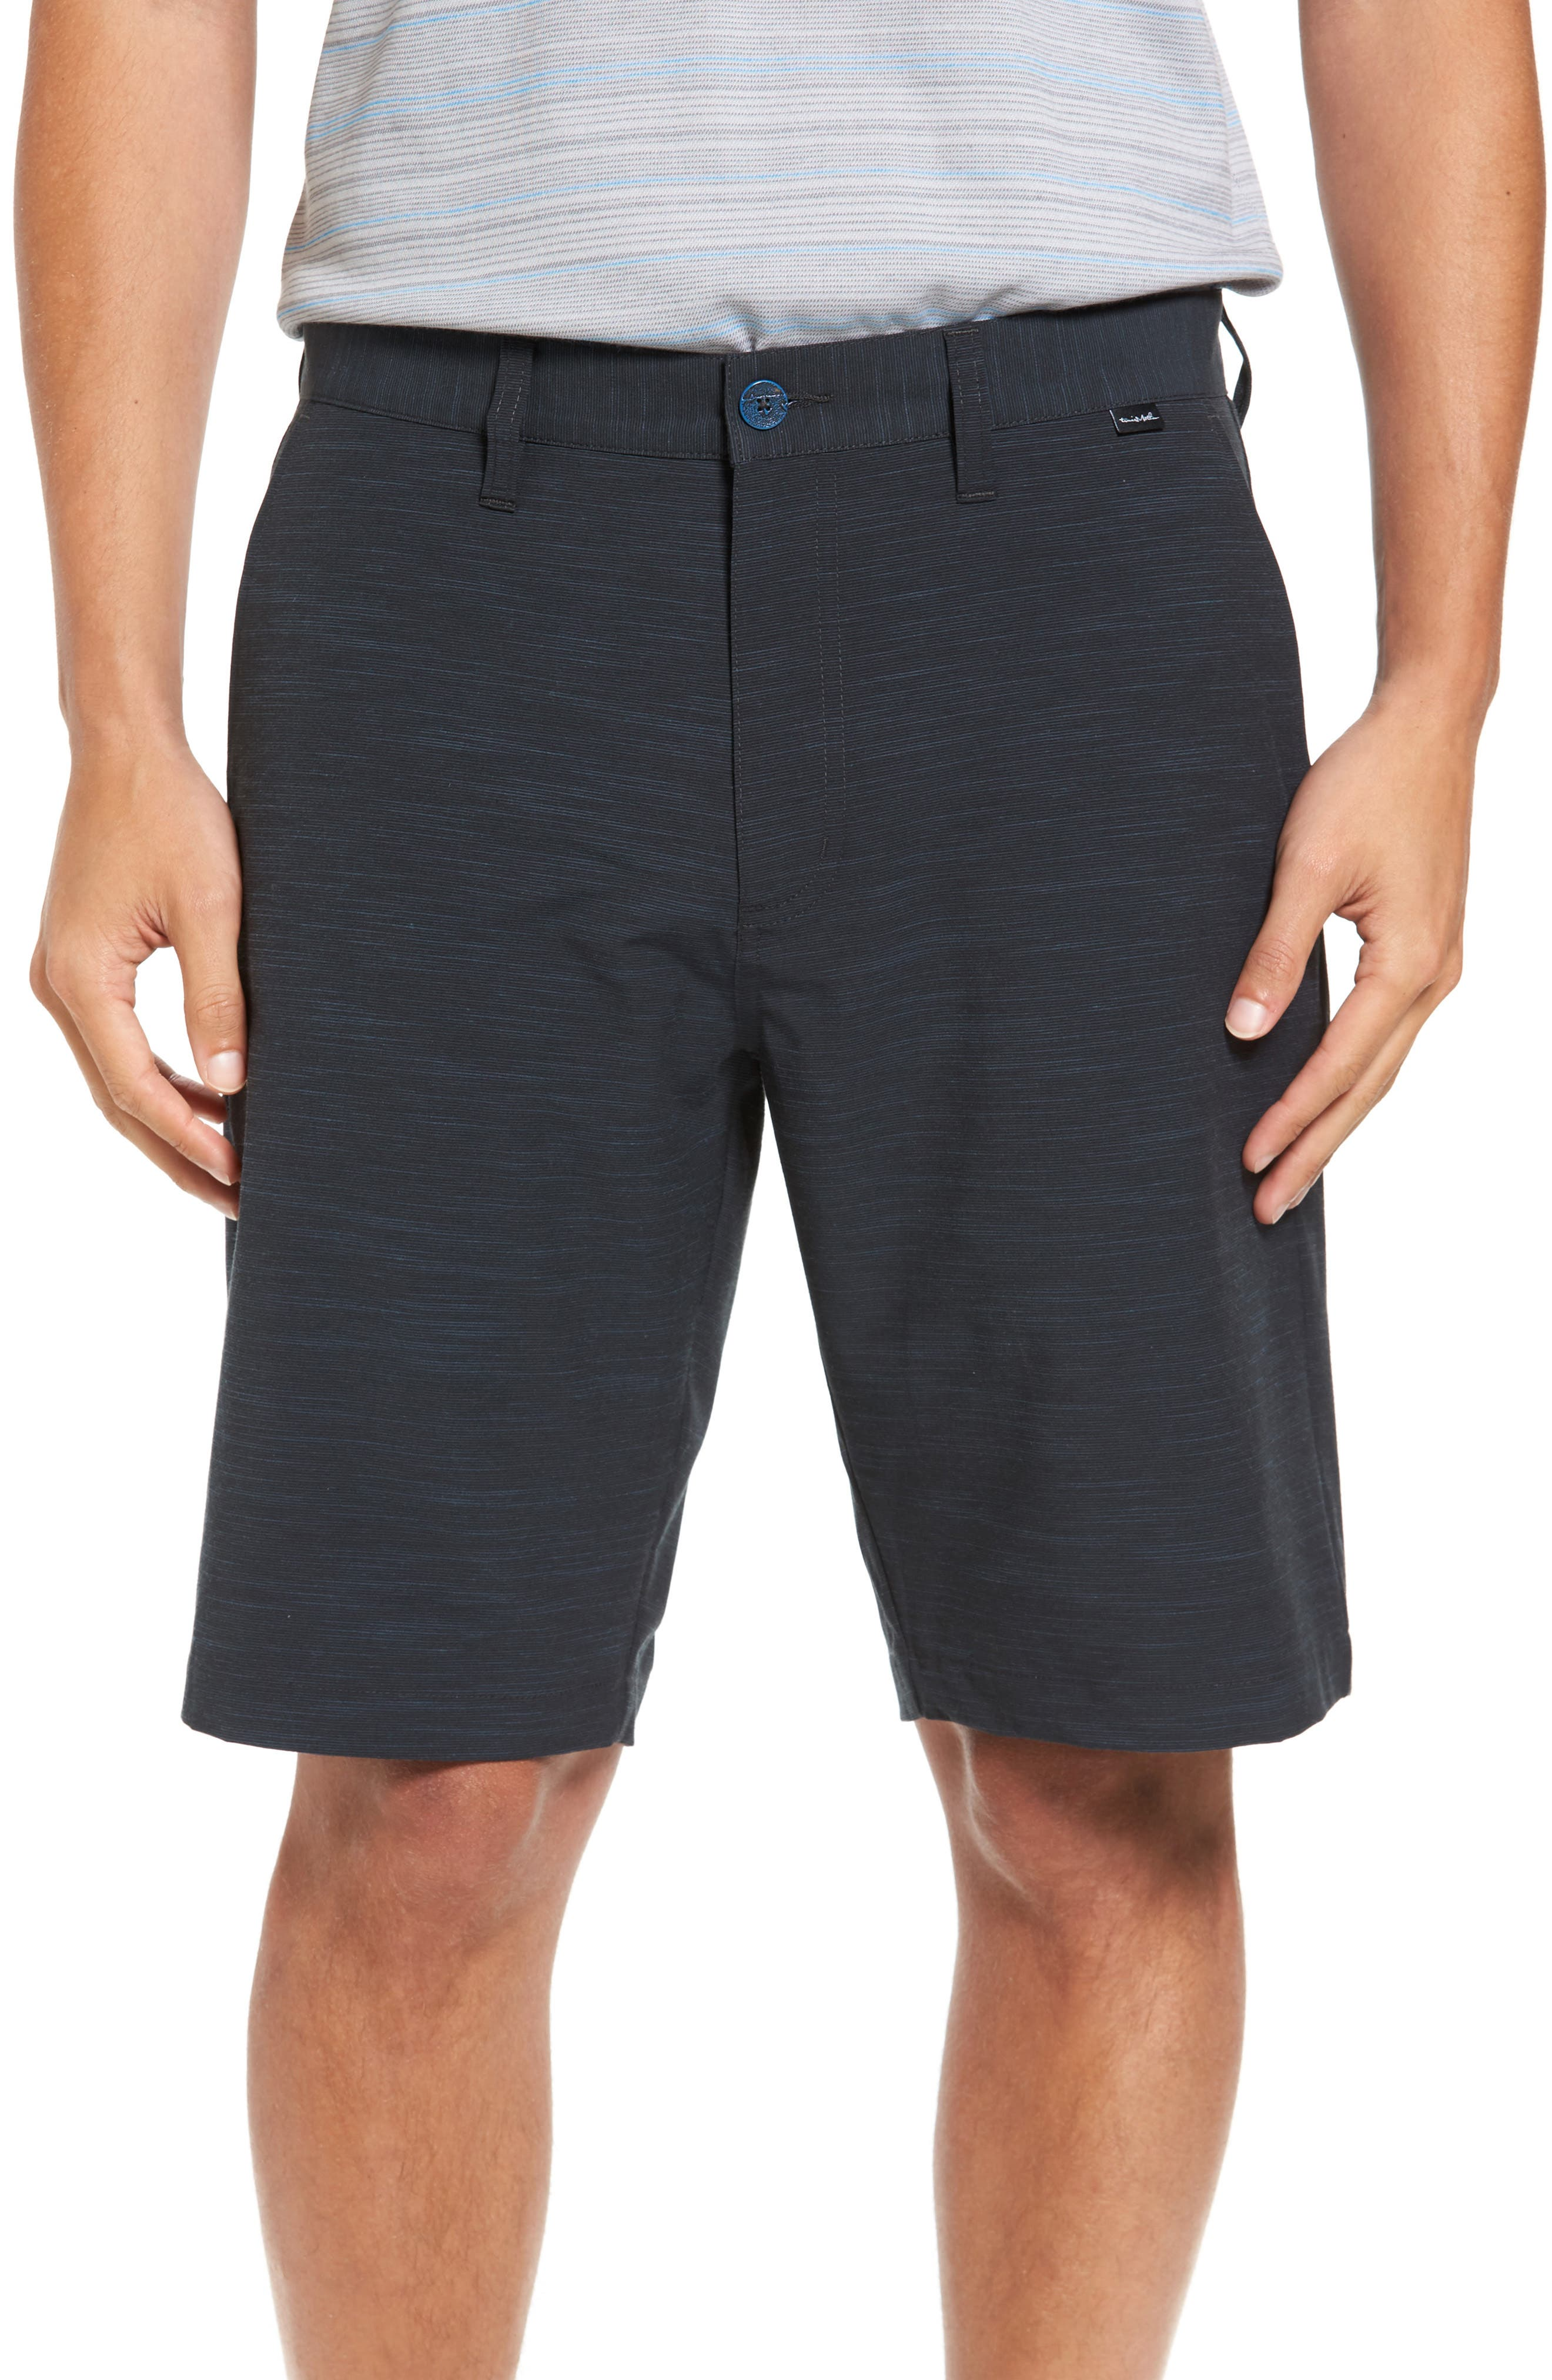 Alternate Image 1 Selected - Travis Mathew Caps Golf Shorts